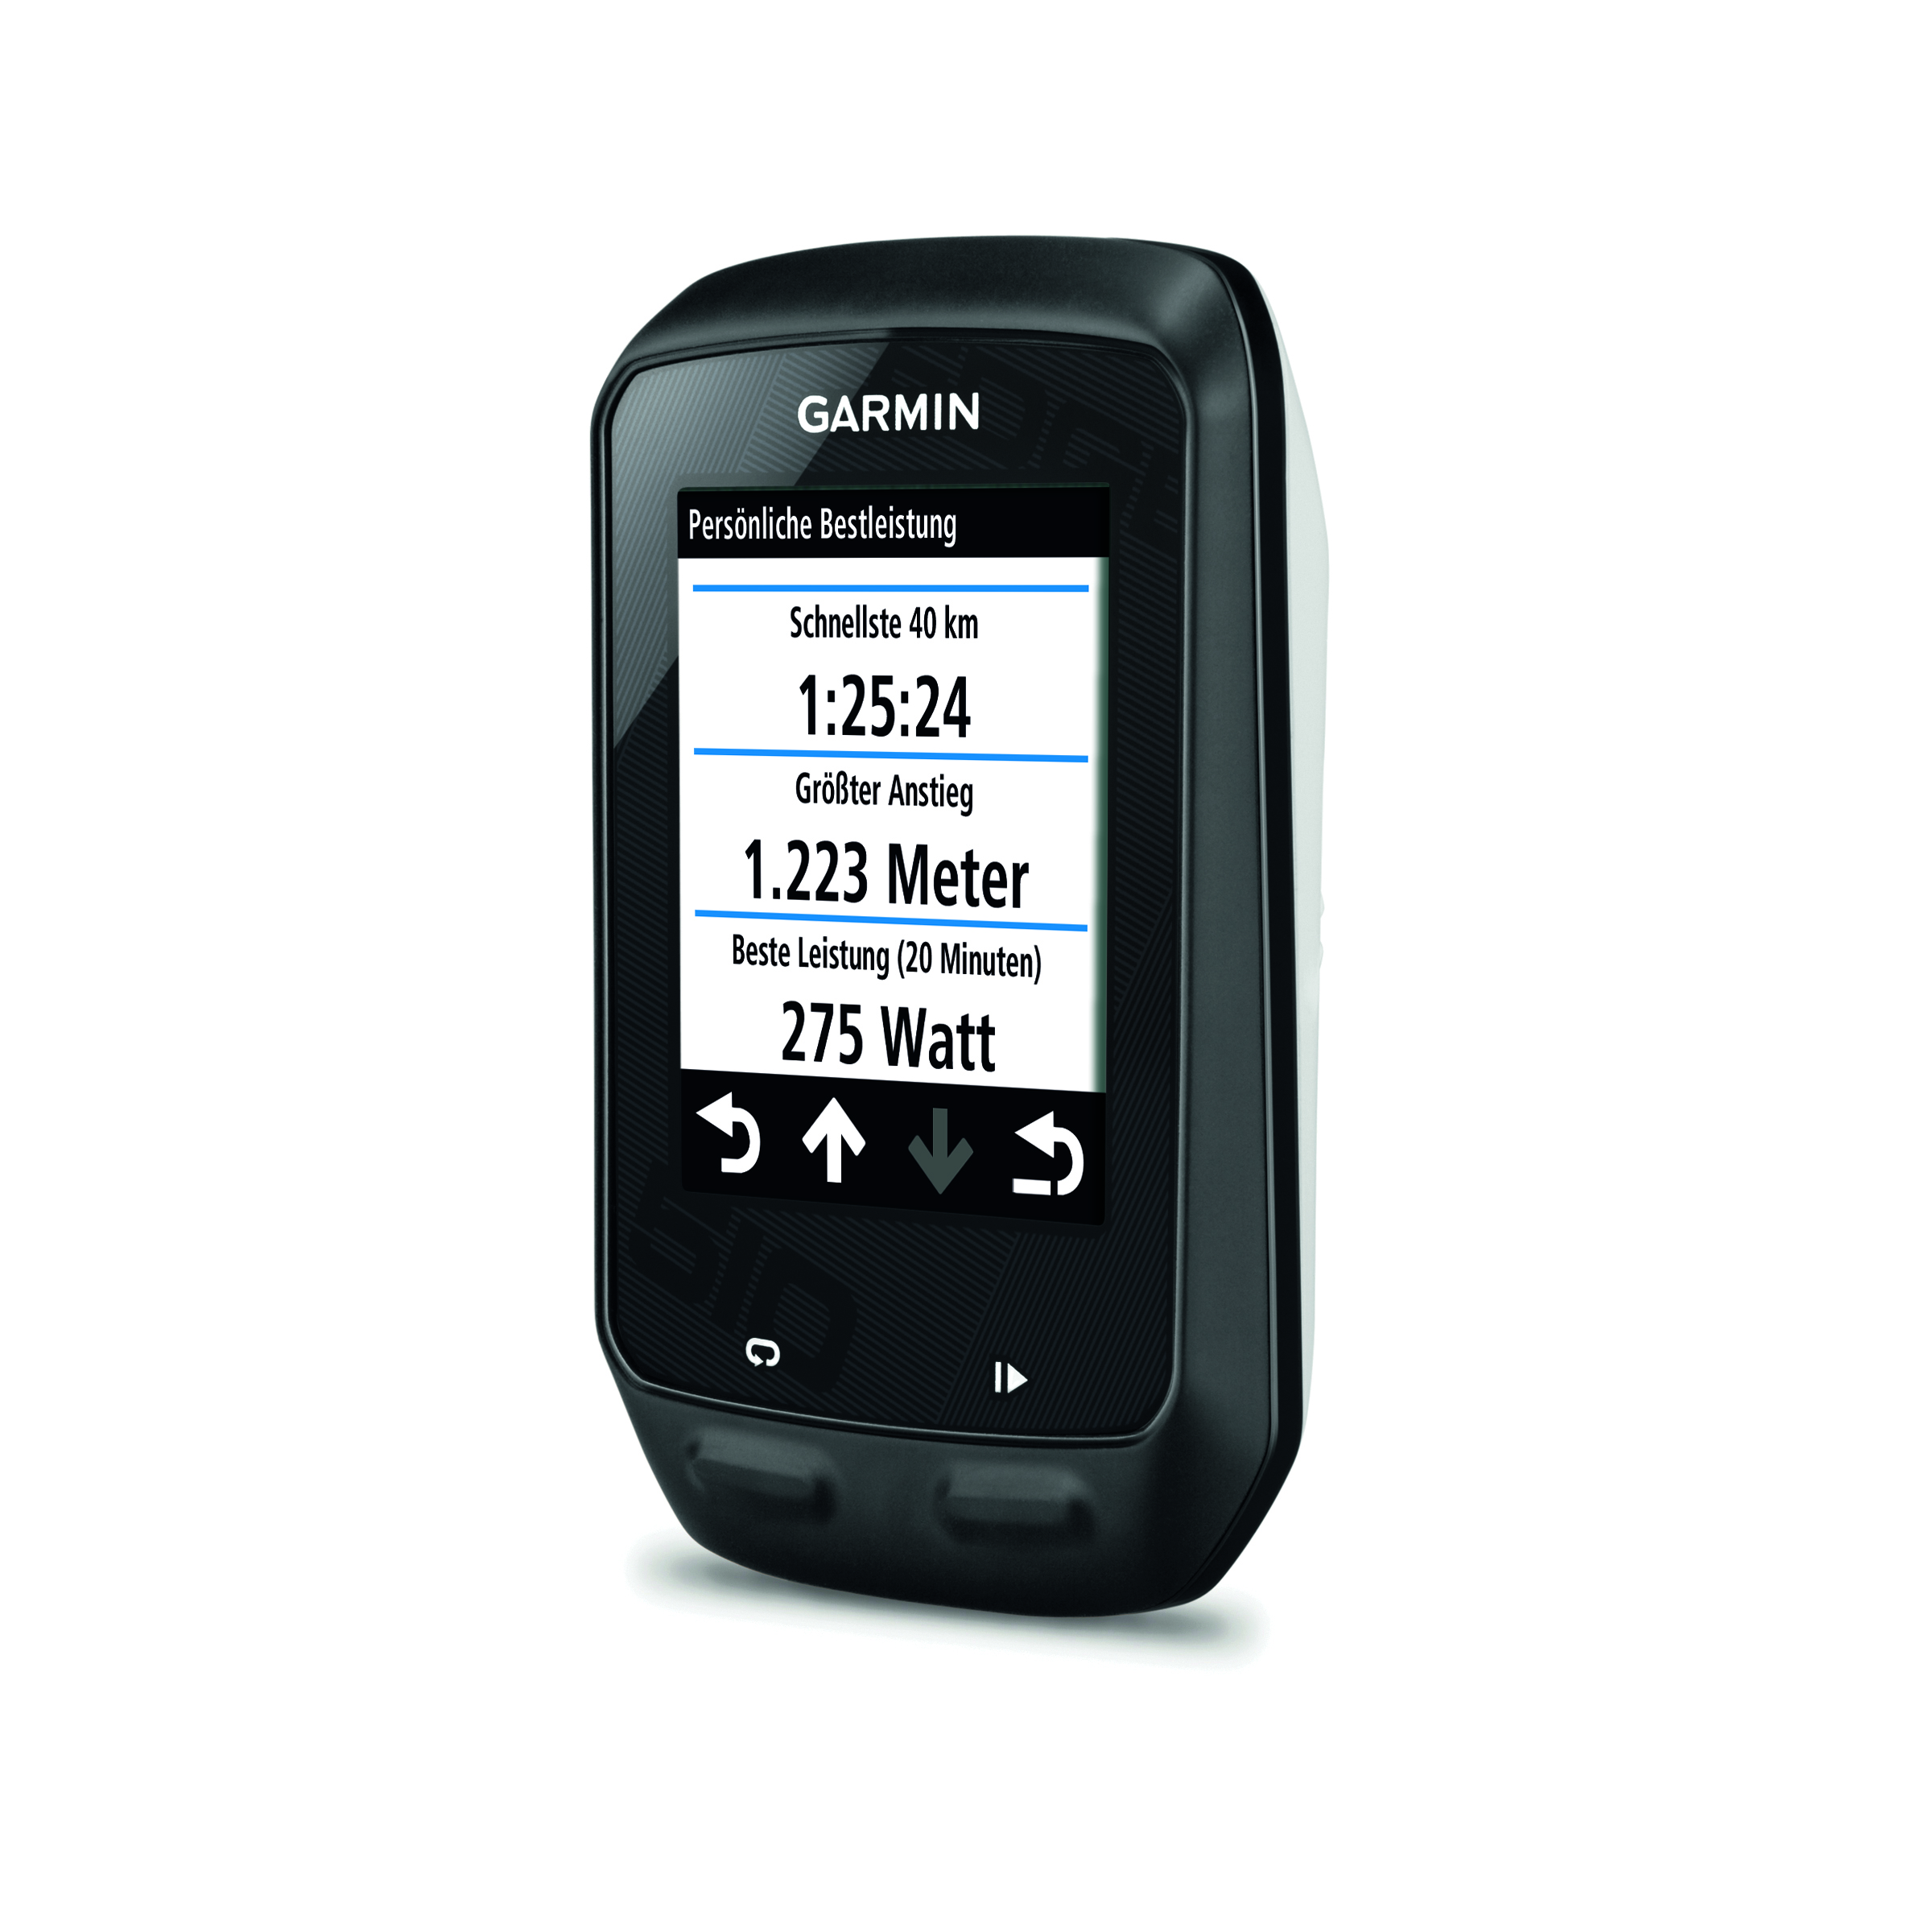 garmin edge 510 und edge 810 neue gps modelle kommen. Black Bedroom Furniture Sets. Home Design Ideas